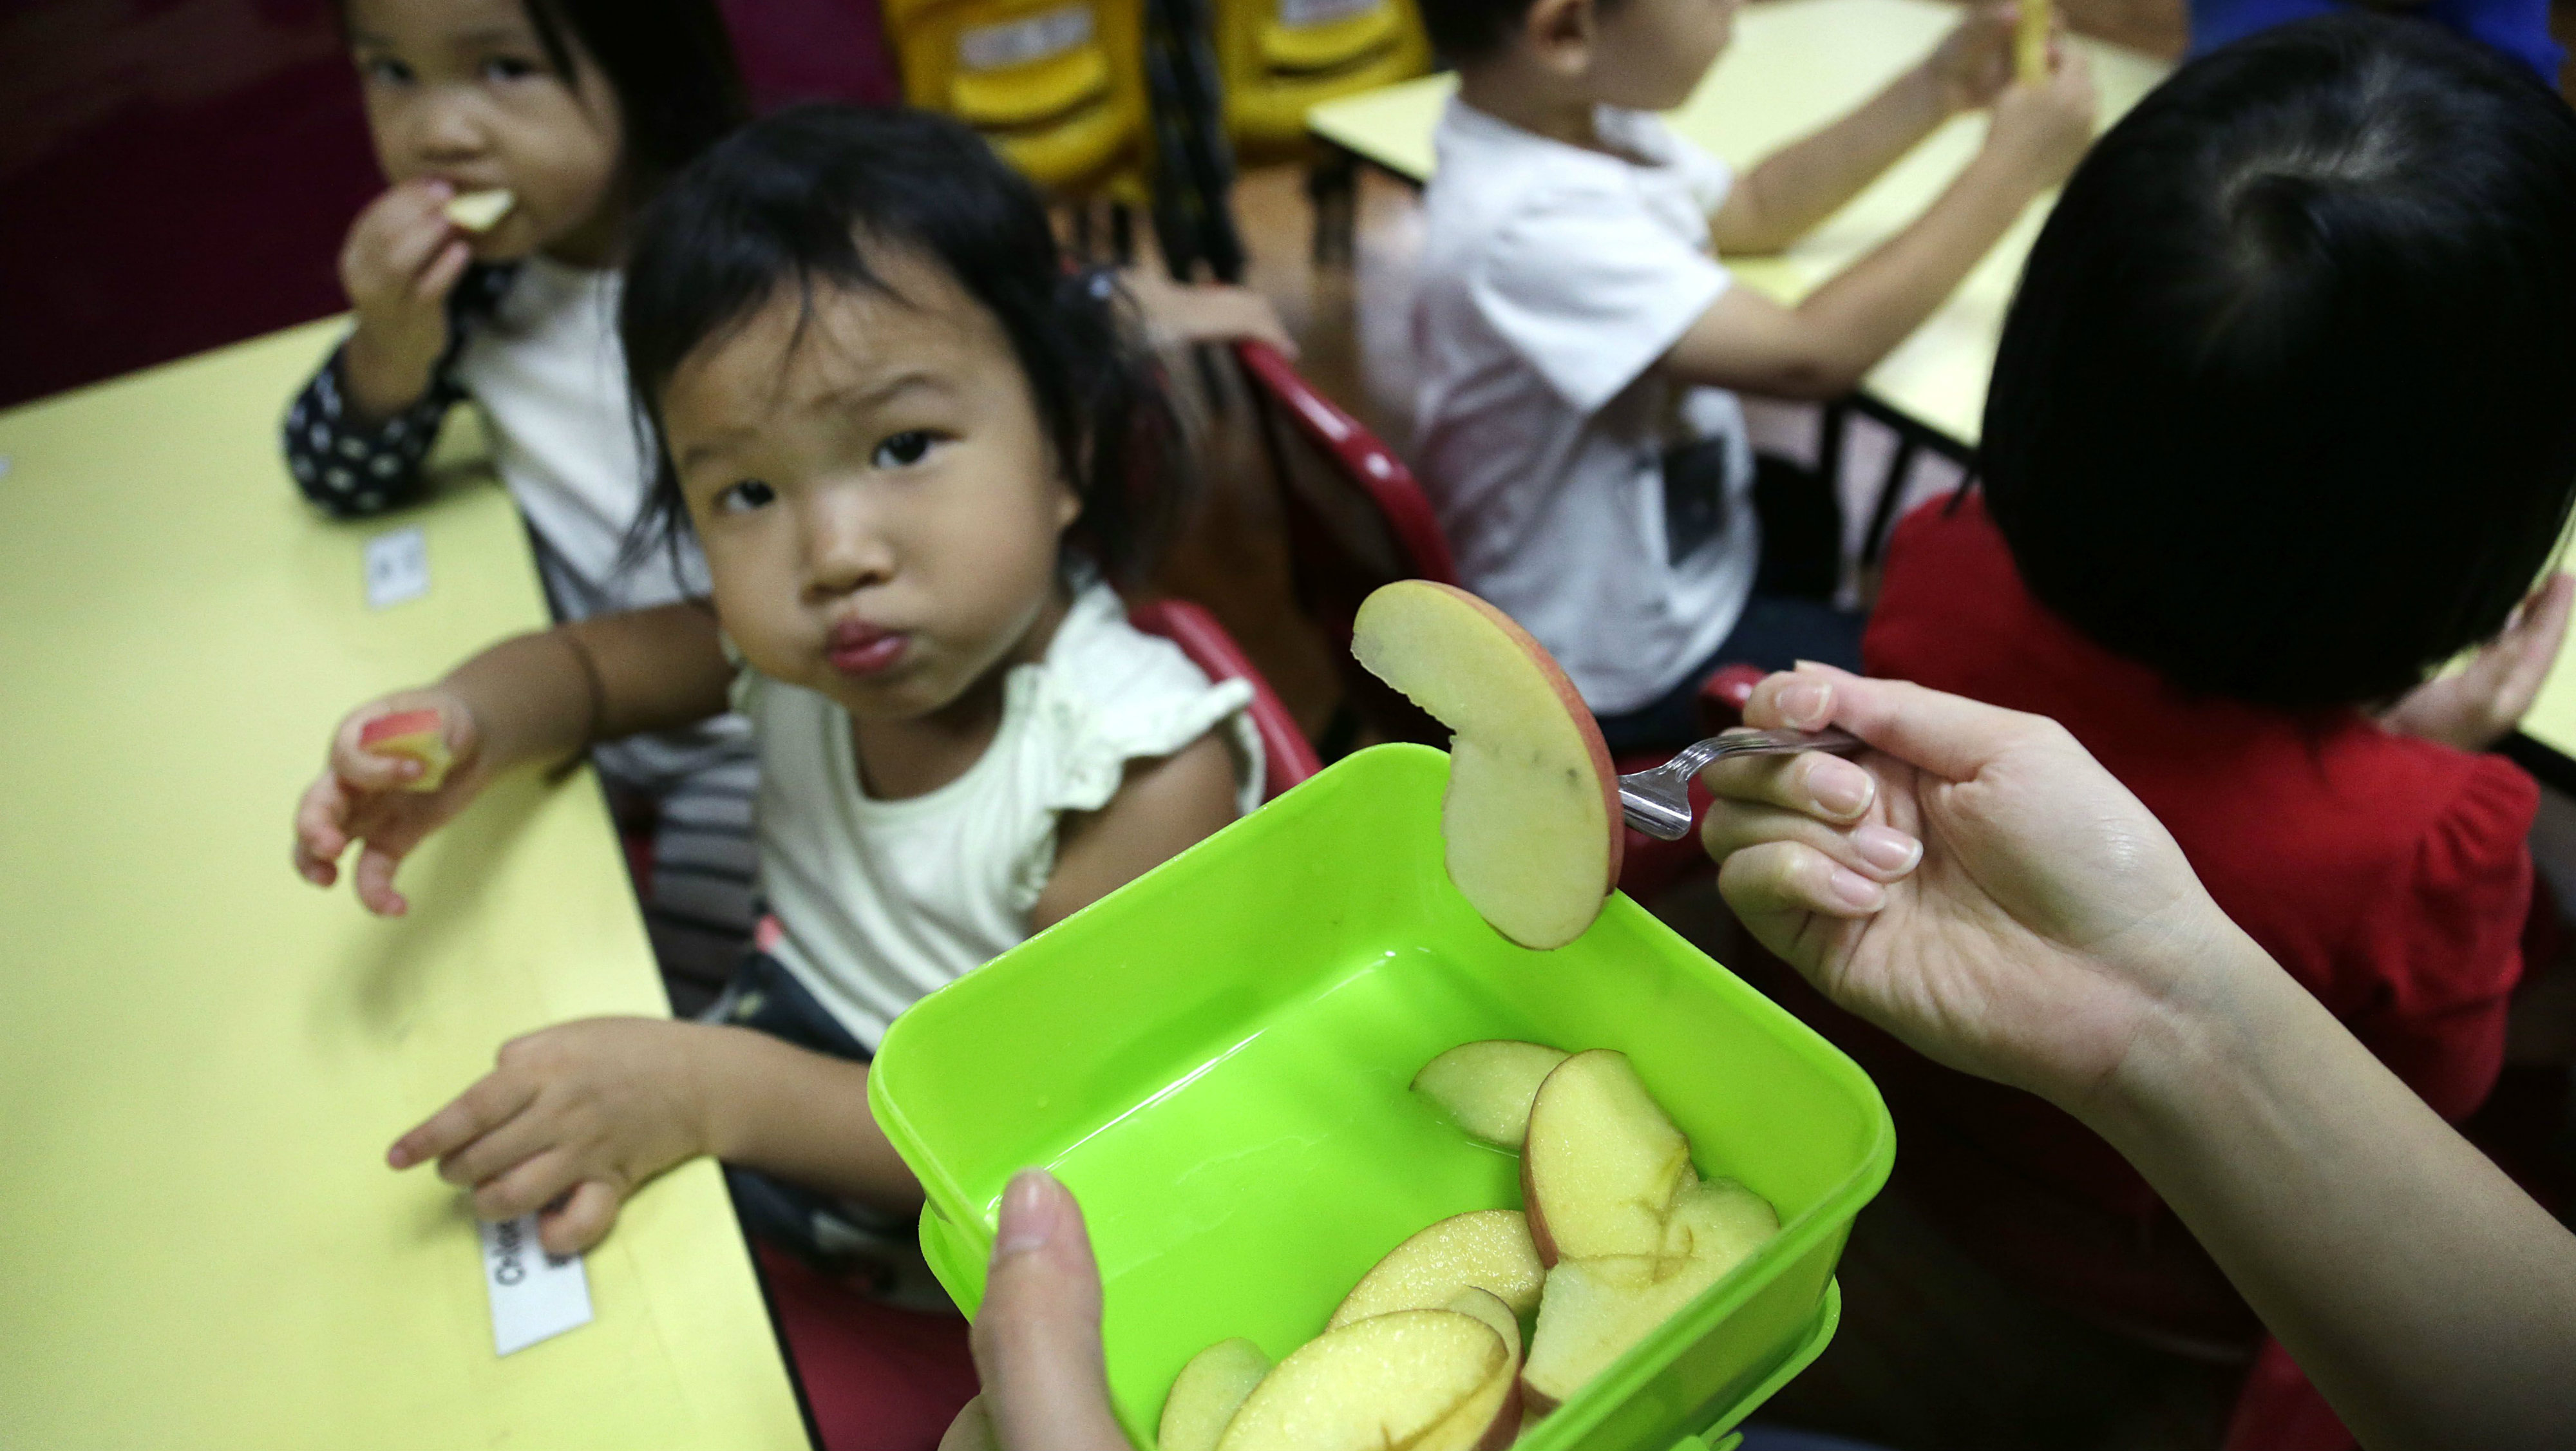 A teacher gives out apples as snacks ahead of lunch, Tuesday, May 6, 2014 at Delcare Edu Center, a local kindergarten and child care center in the business district of Singapore. Everyday, lunch is prepared by the school kitchen staff and efforts to promote healthy eating in this particular center is seen in painstaking efforts in selection of their ingredients and food preparation methods. The children in this school are also taught to accept wide varieties of food and a weekly menu is planned by the principal for each school term. Healthy snacks consisting of fruits, home-made bread, natural beans, soup, and barley are served as their snacks between meals. (AP Photo/Wong Maye-E)